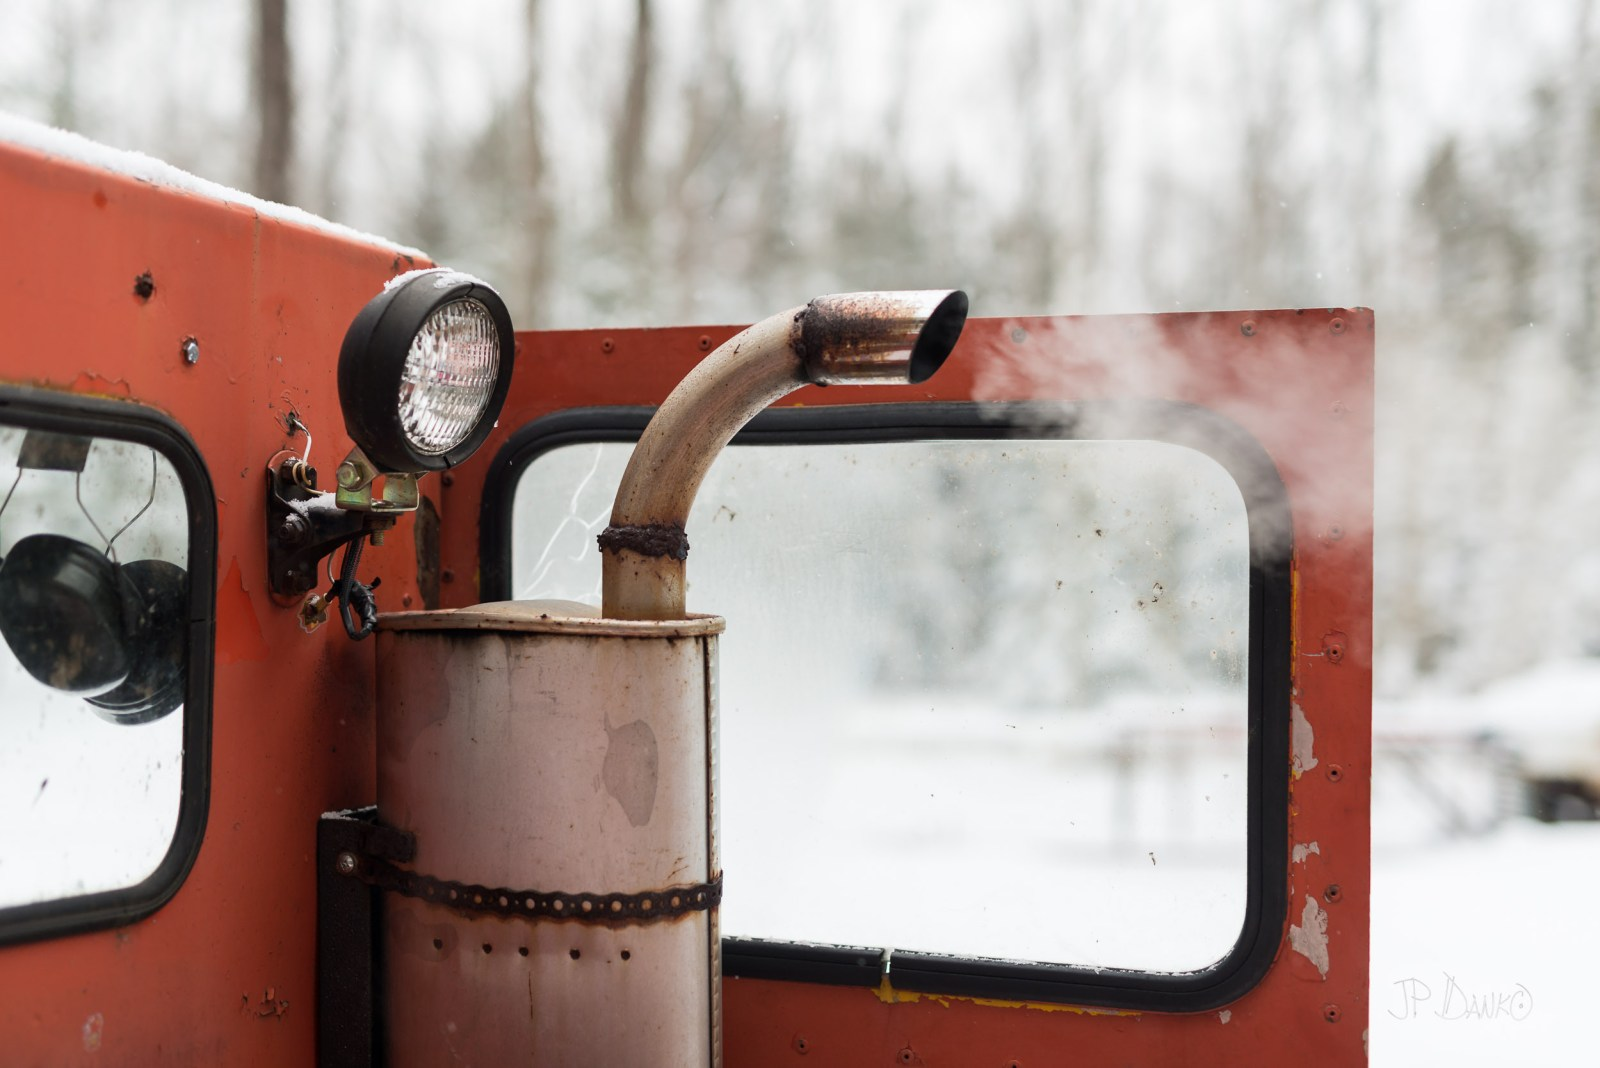 Exhaust spews from rusty old muffler strapped to cab of orange vintage snow groomer